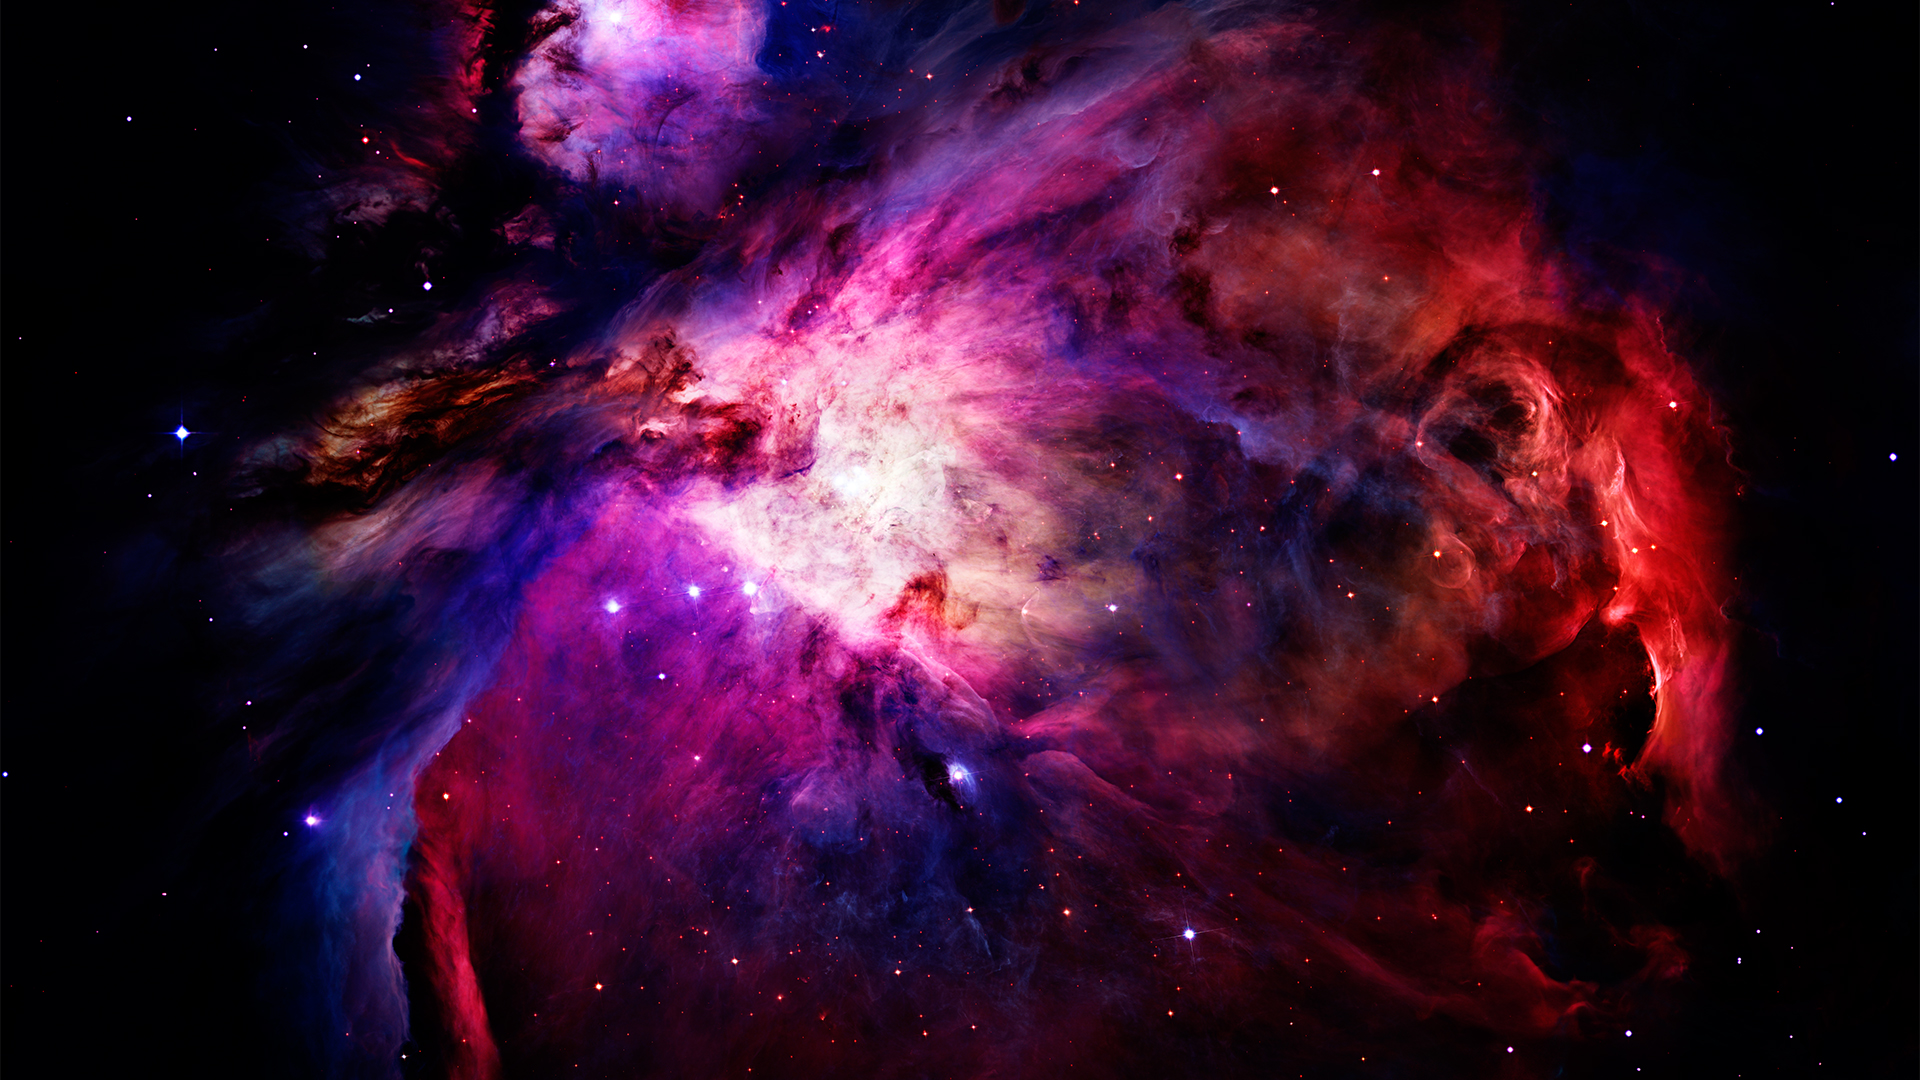 Nebula HD wallpaper | 1920x1080 | #44026